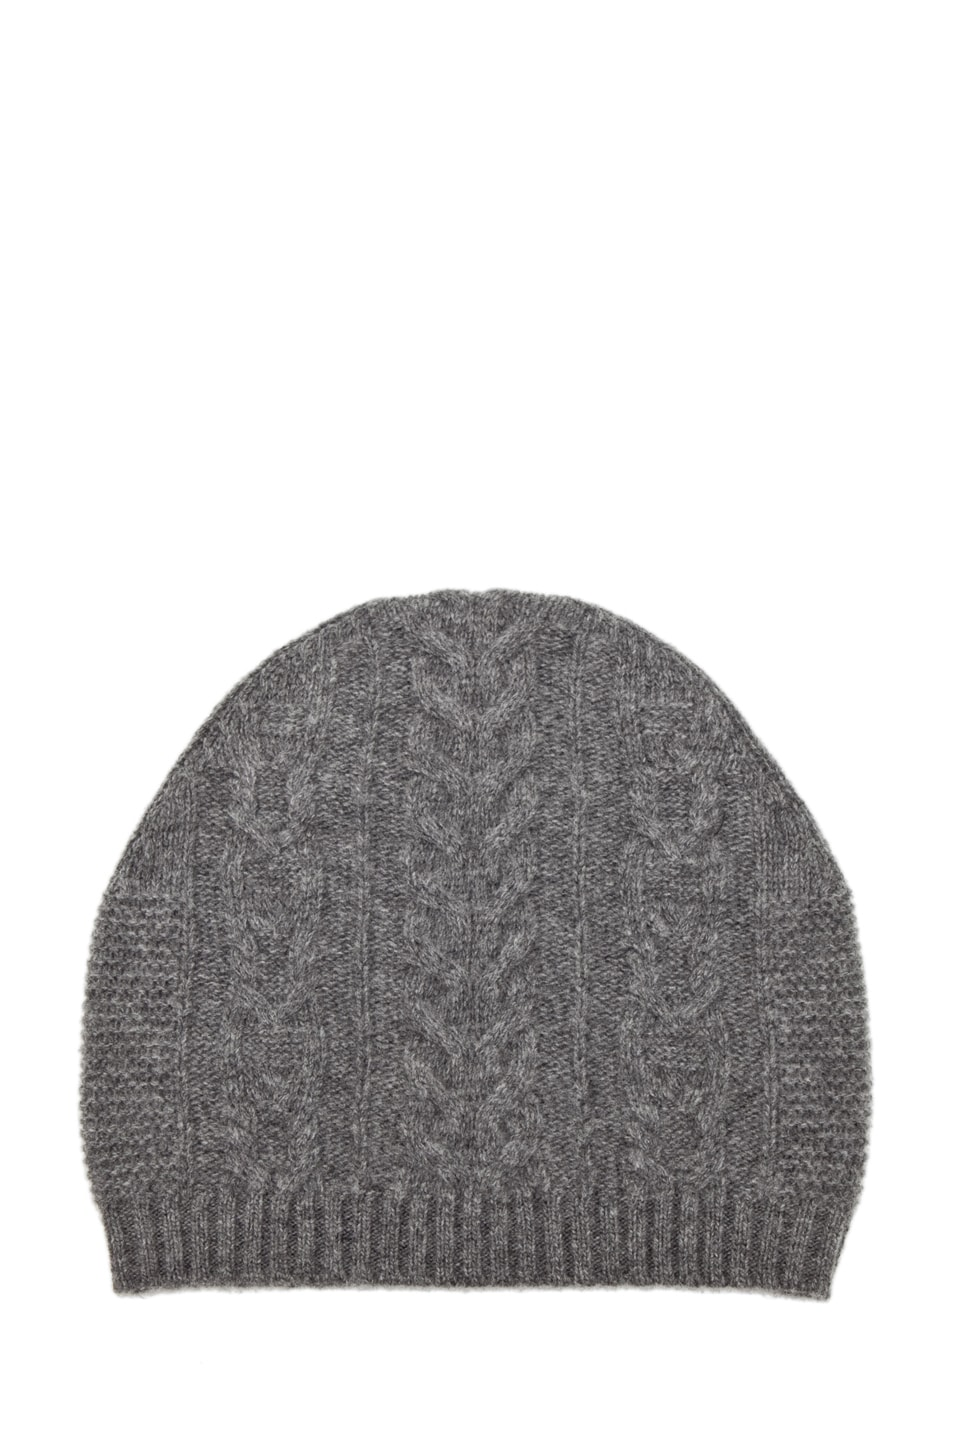 Image 1 of Rag & Bone Danby Beanie in Ash Grey